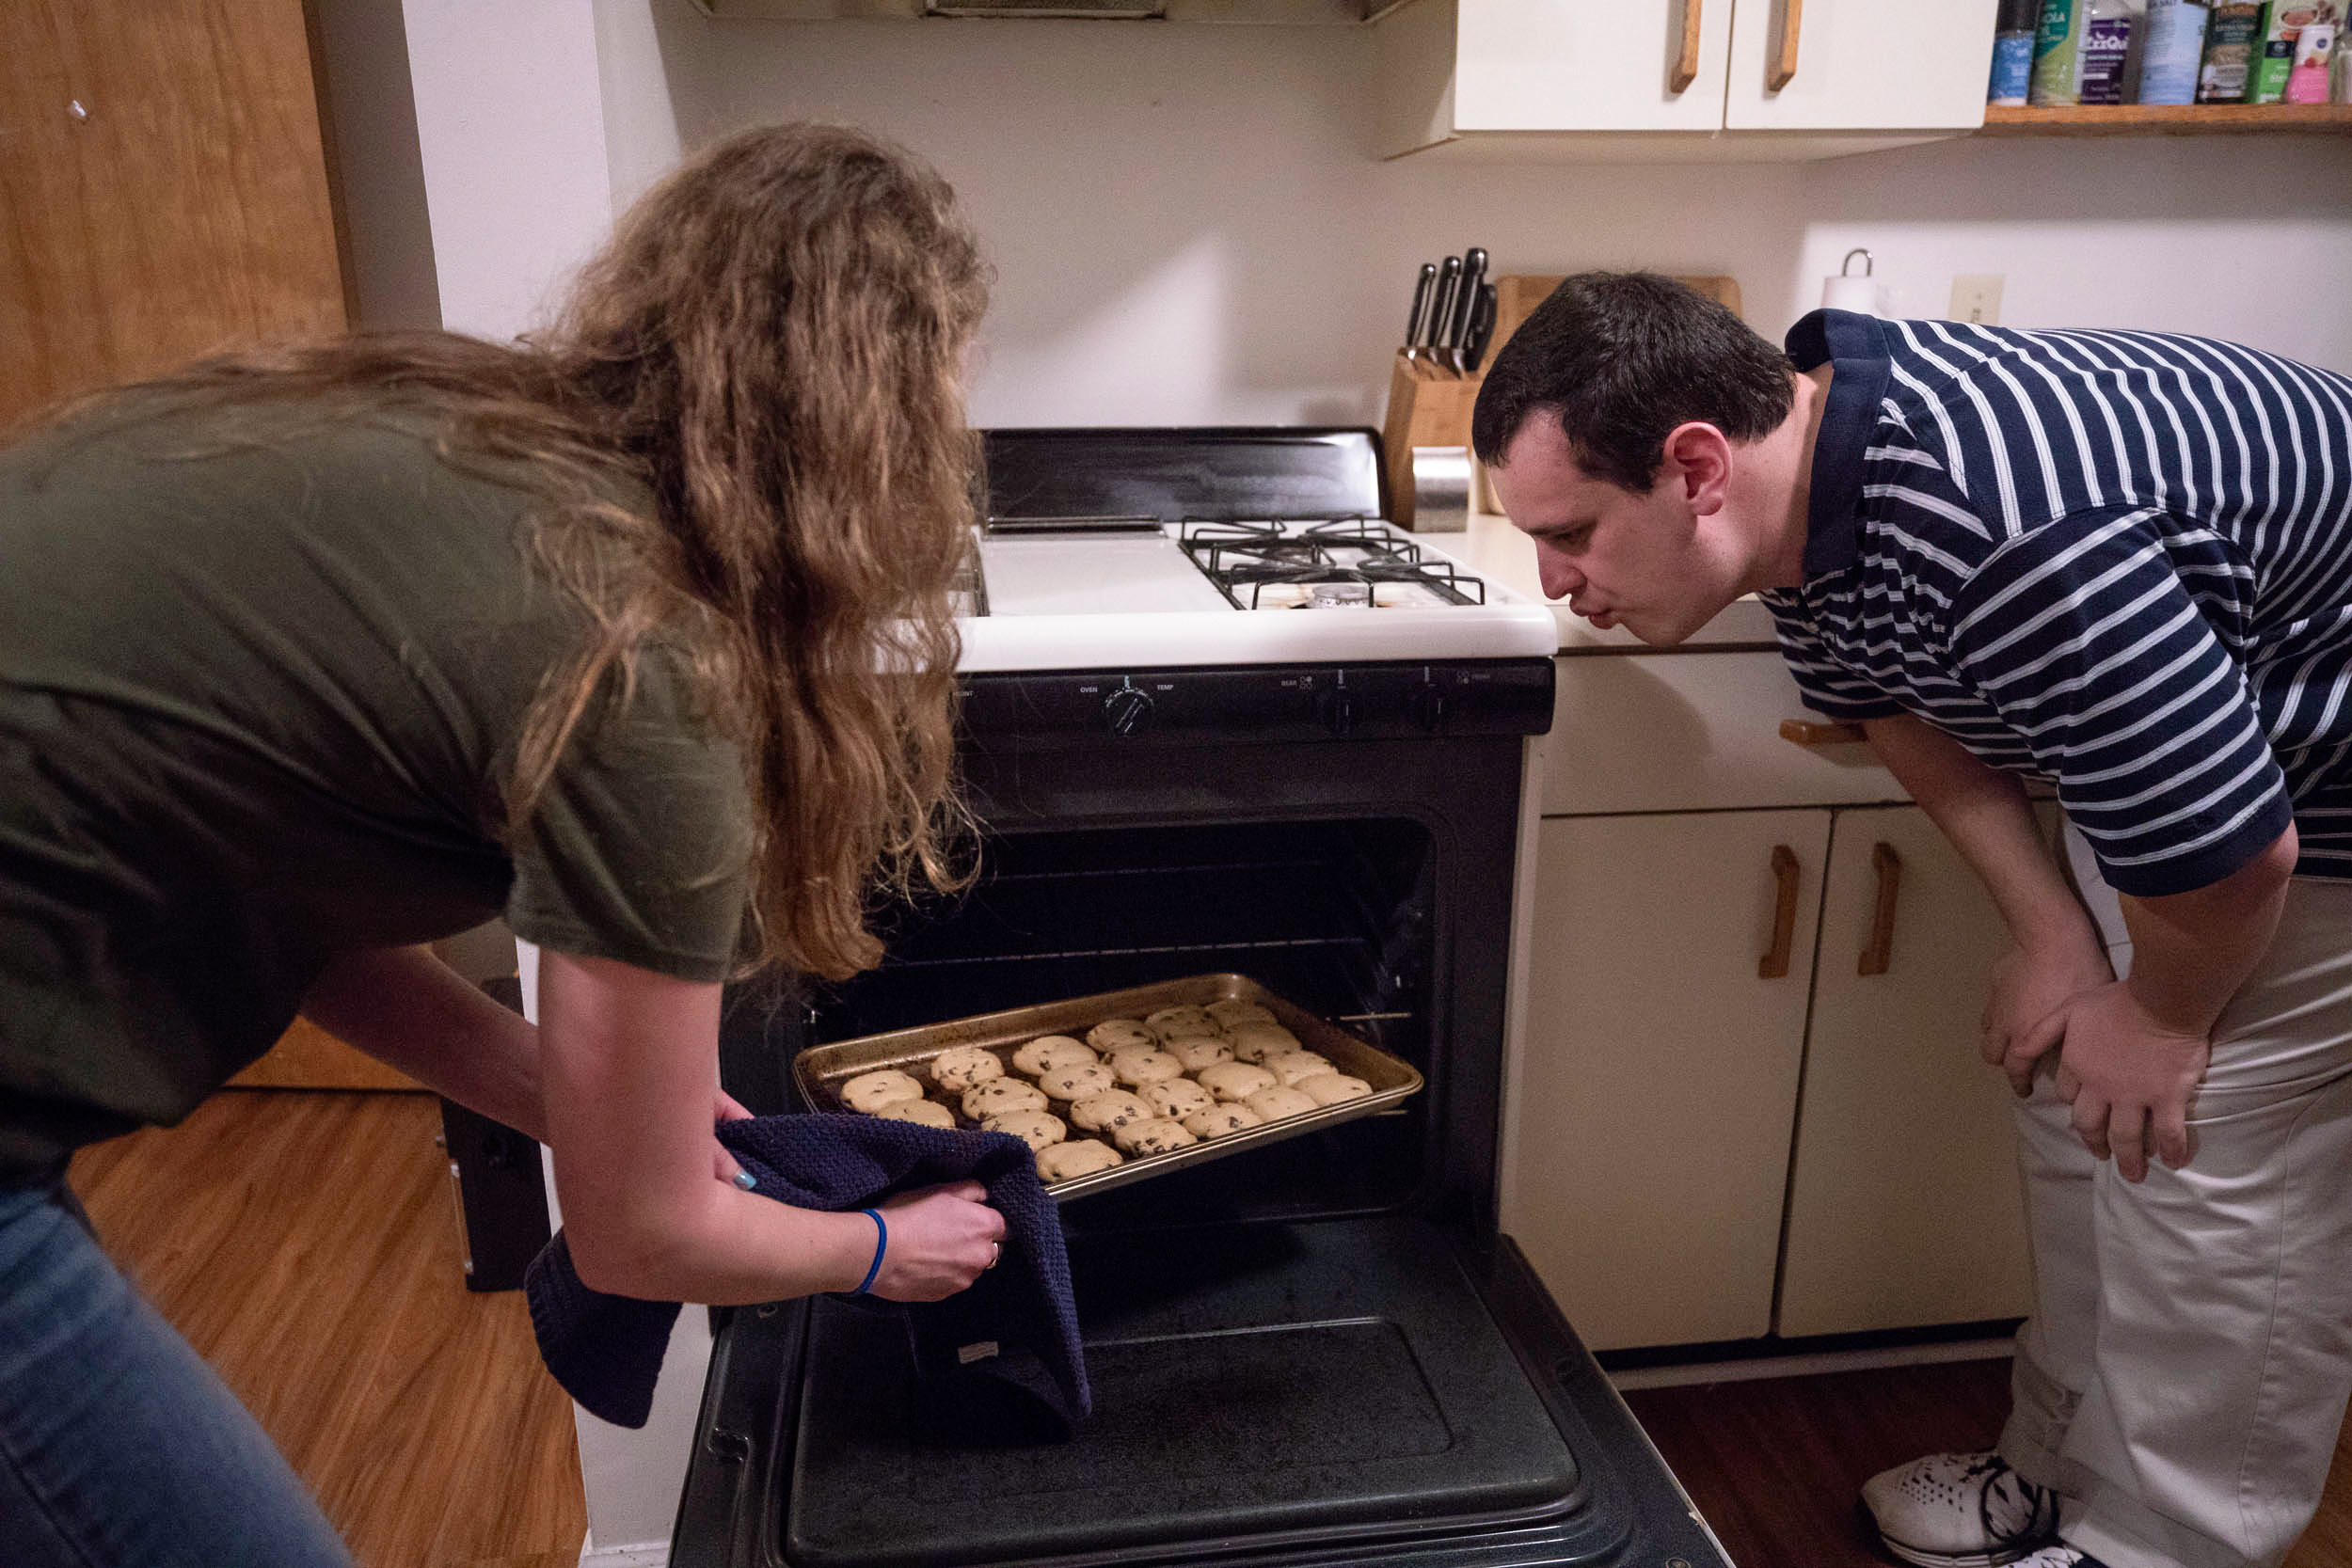 One afternoon earlier this semester, Neal and Rocker hung out at her apartment on 14th Street, where they baked chocolate chip cookies.